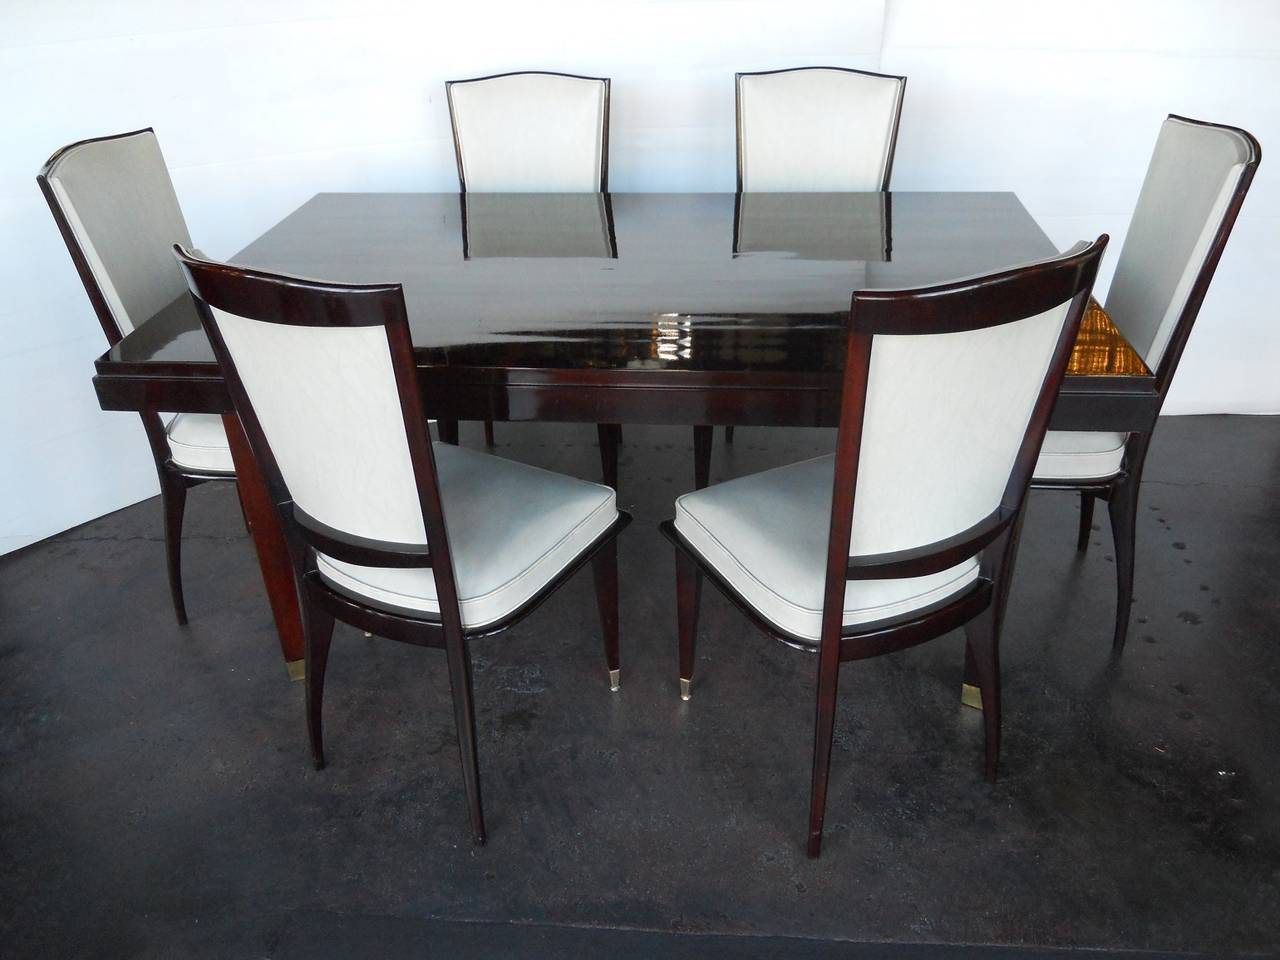 Elegant art deco dining room set by sviadocht freres at 1stdibs - Art deco dining room table ...